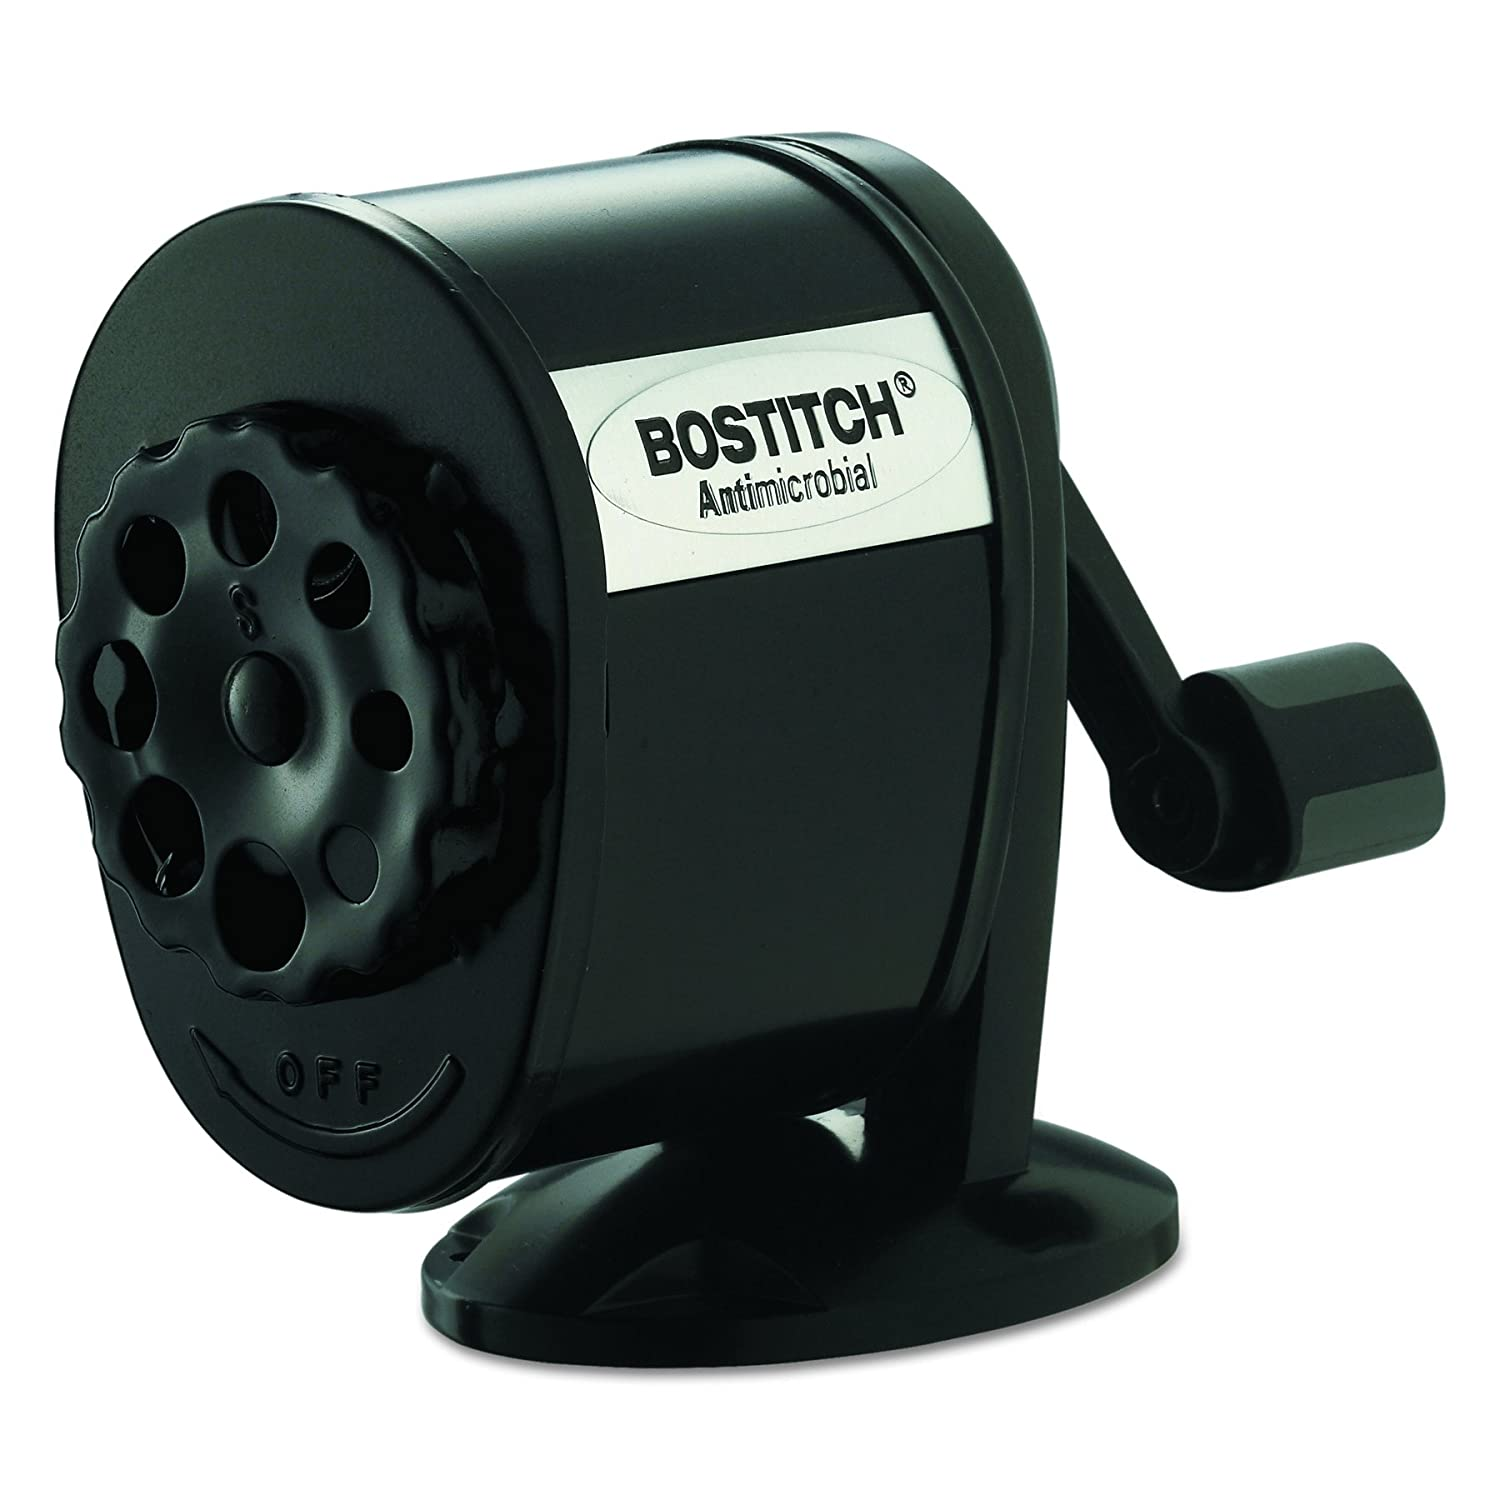 Bostitch Metal Antimicrobial Manual Pencil Sharpener, Black (MPS1-BLK)